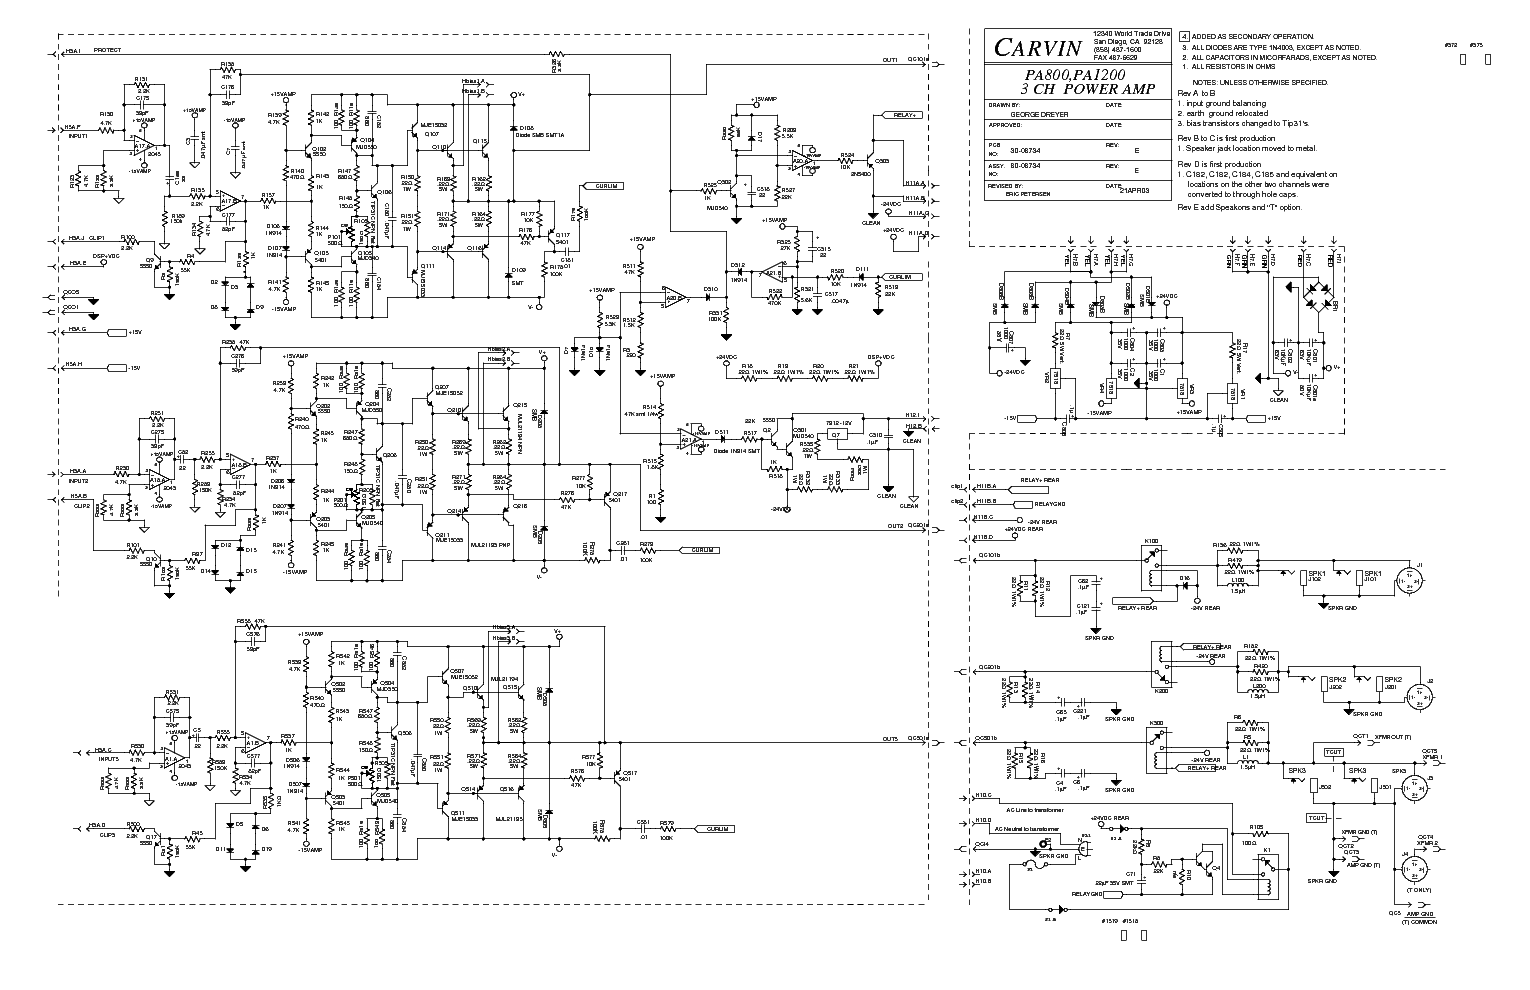 Carvin Vtr 2800 Sch Service Manual Download Schematics Eeprom Pa800 1200